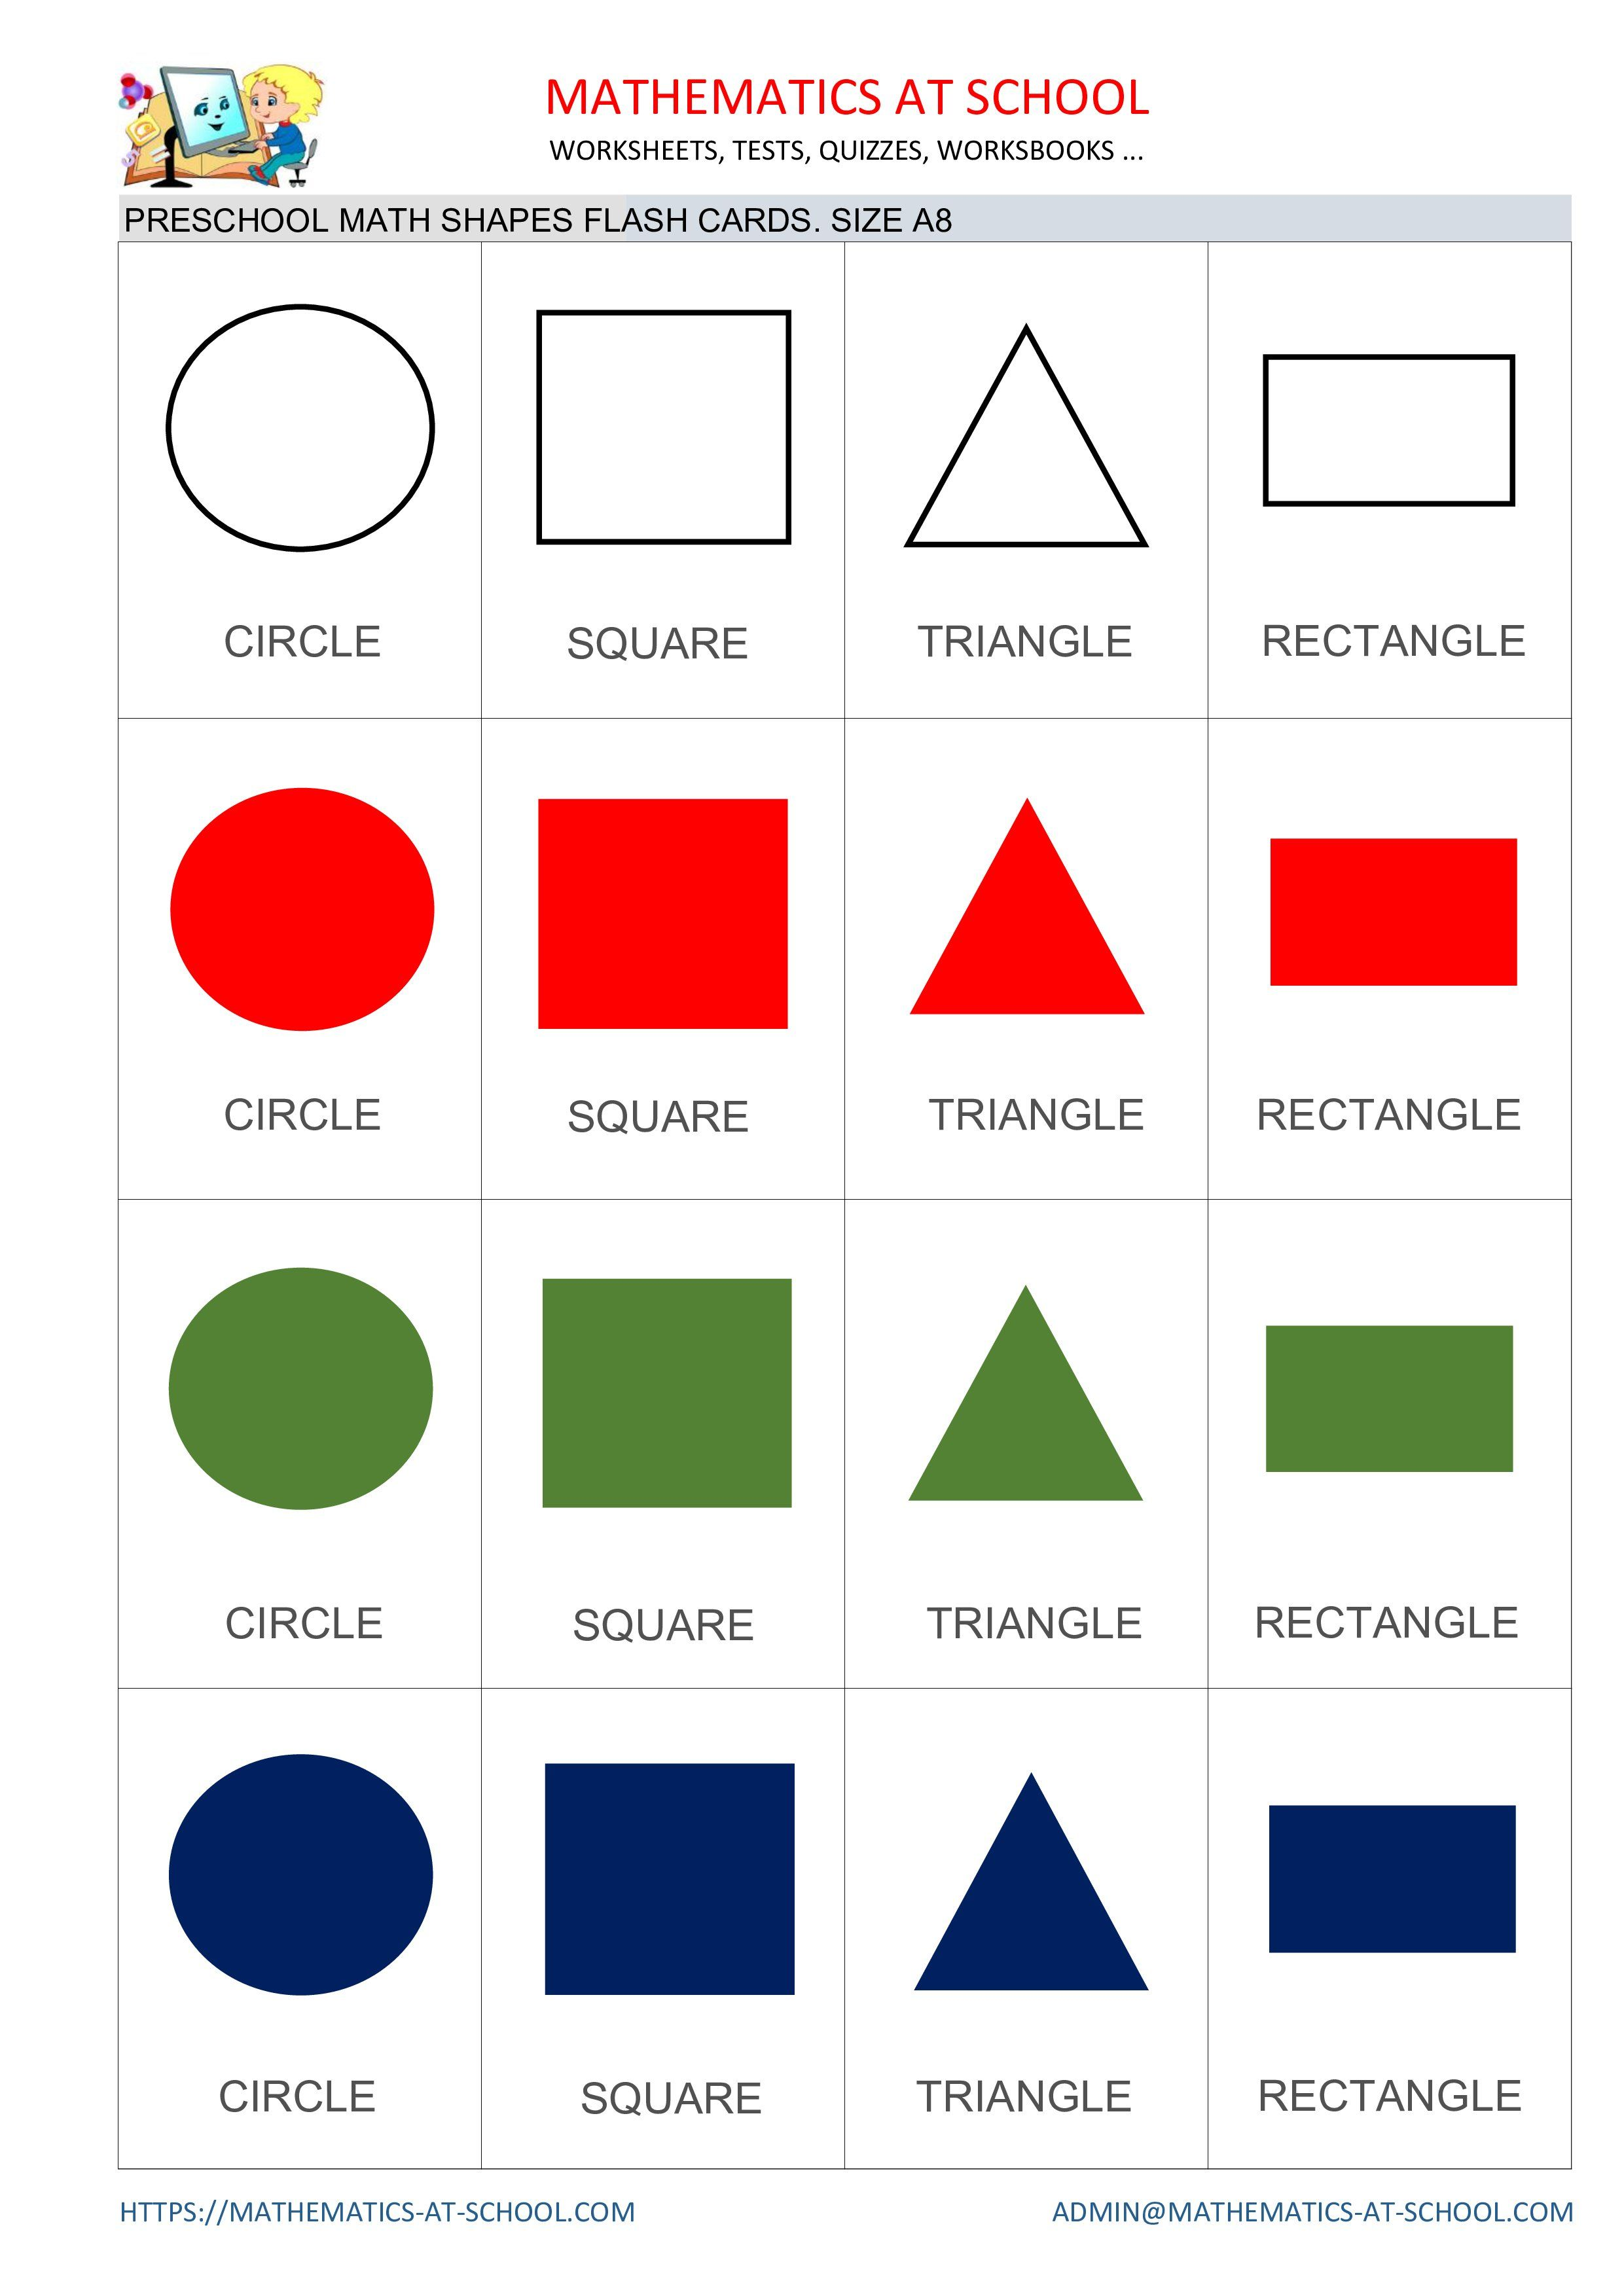 Preschool Math Flash Cards Shapes Circle Square